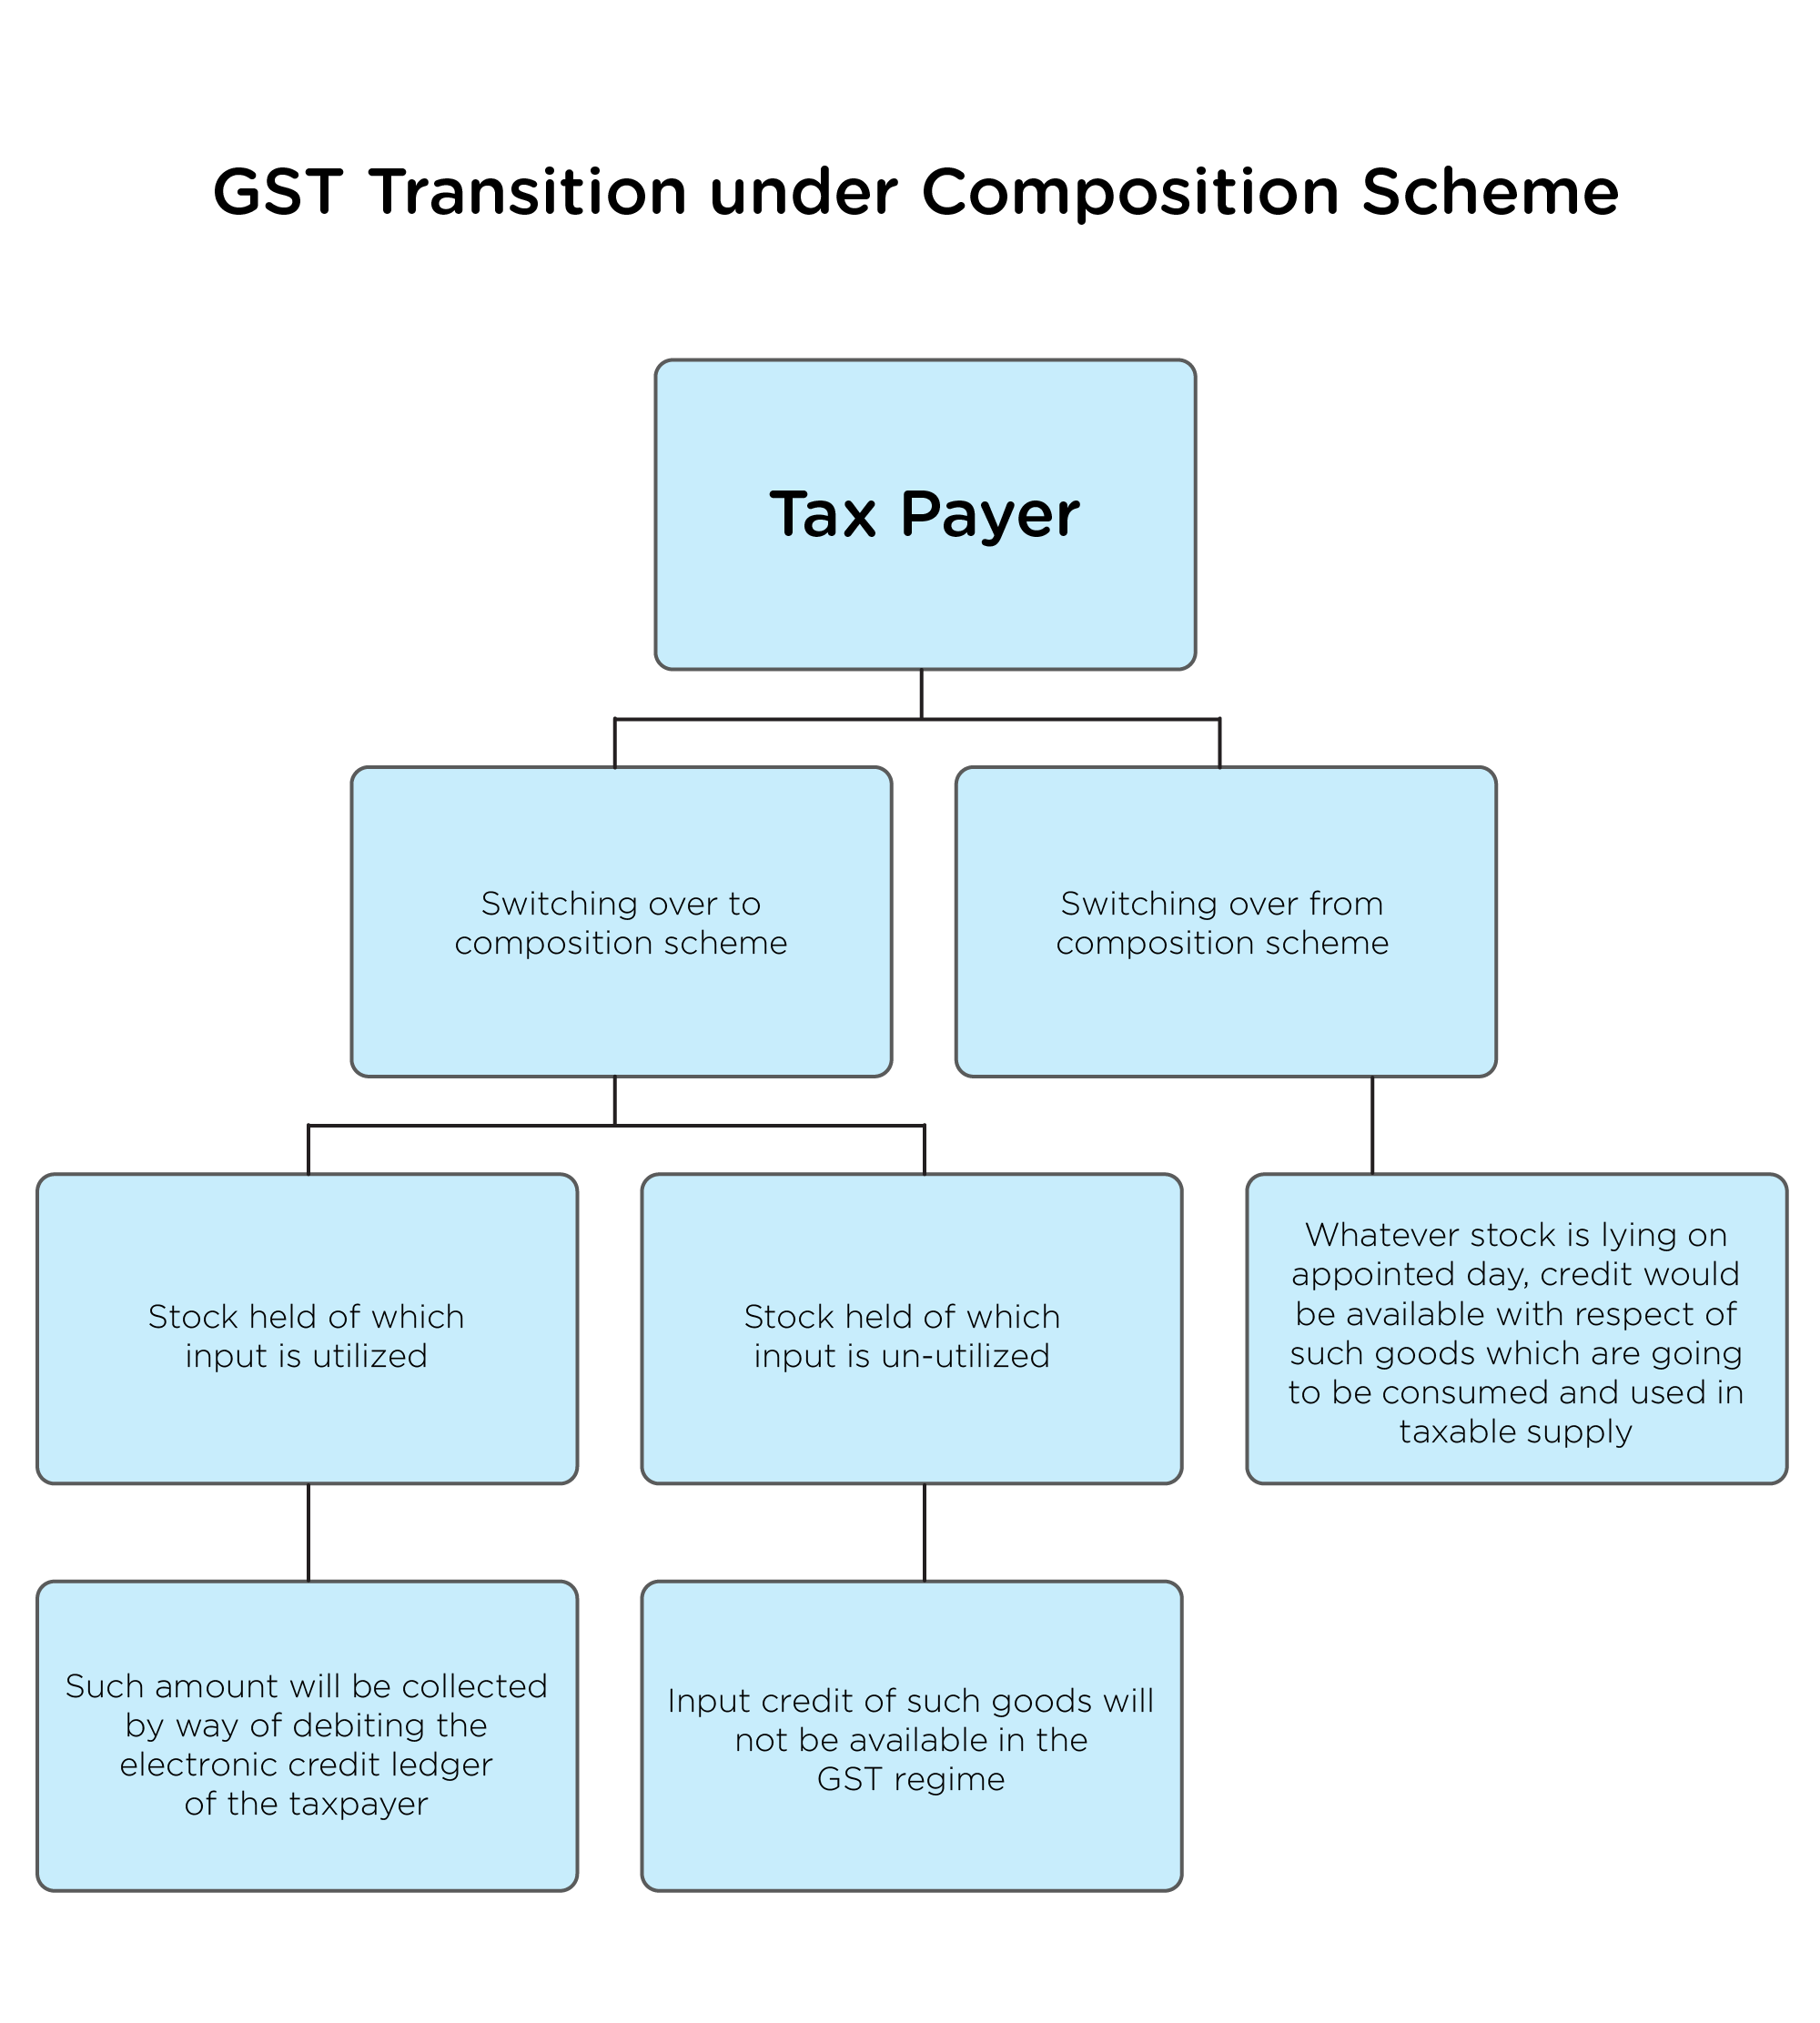 GST transition process